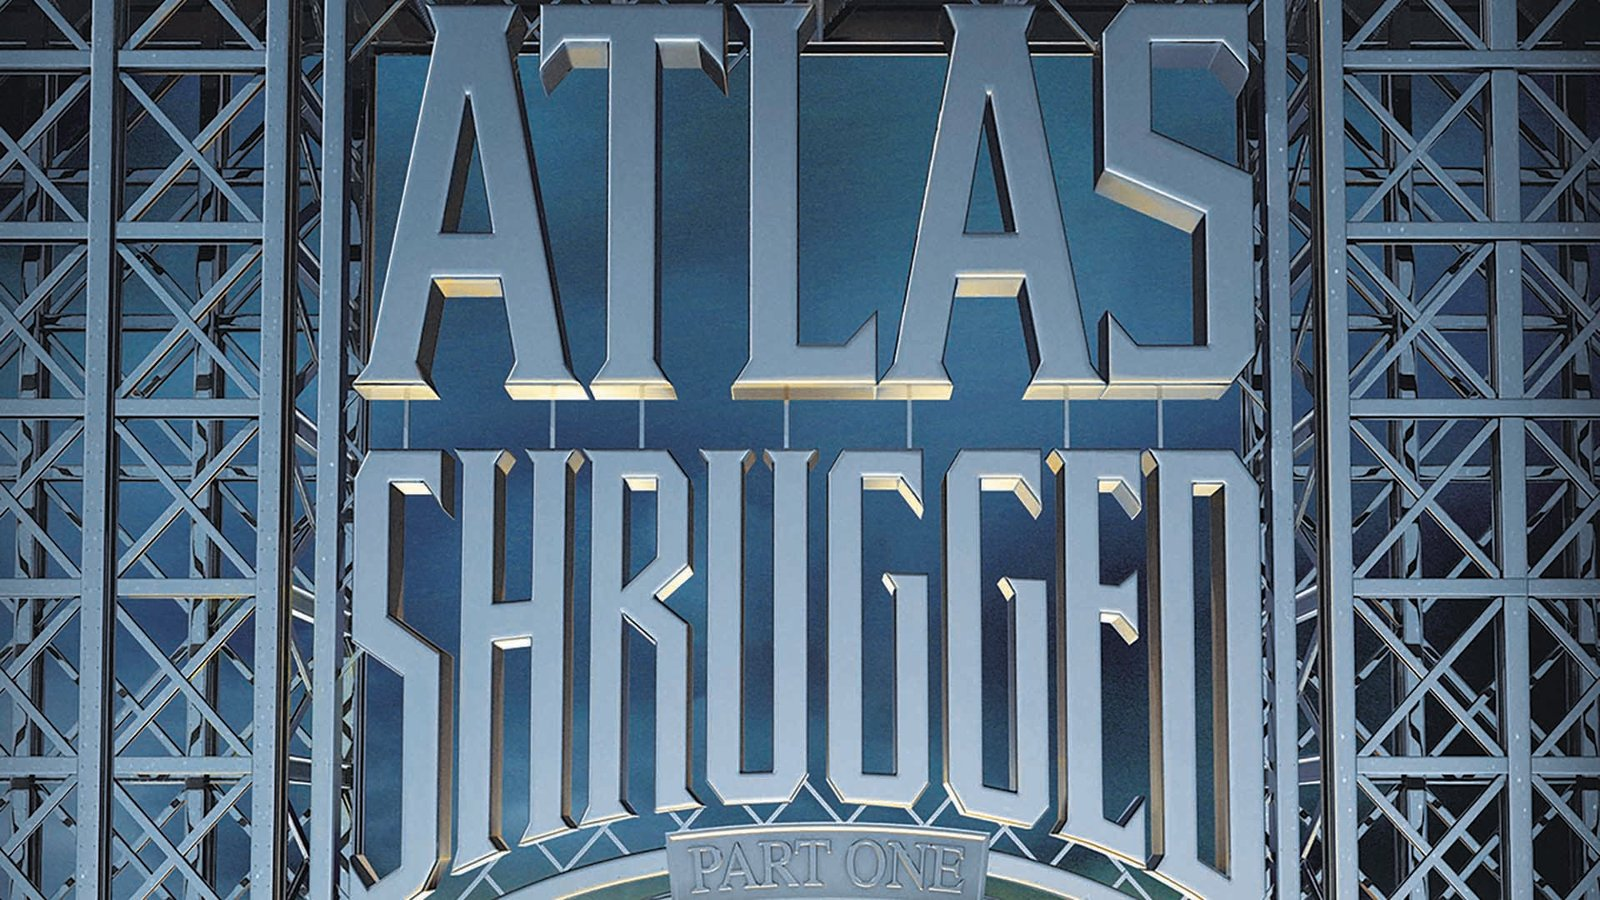 Atlas Shrugged: Part 1